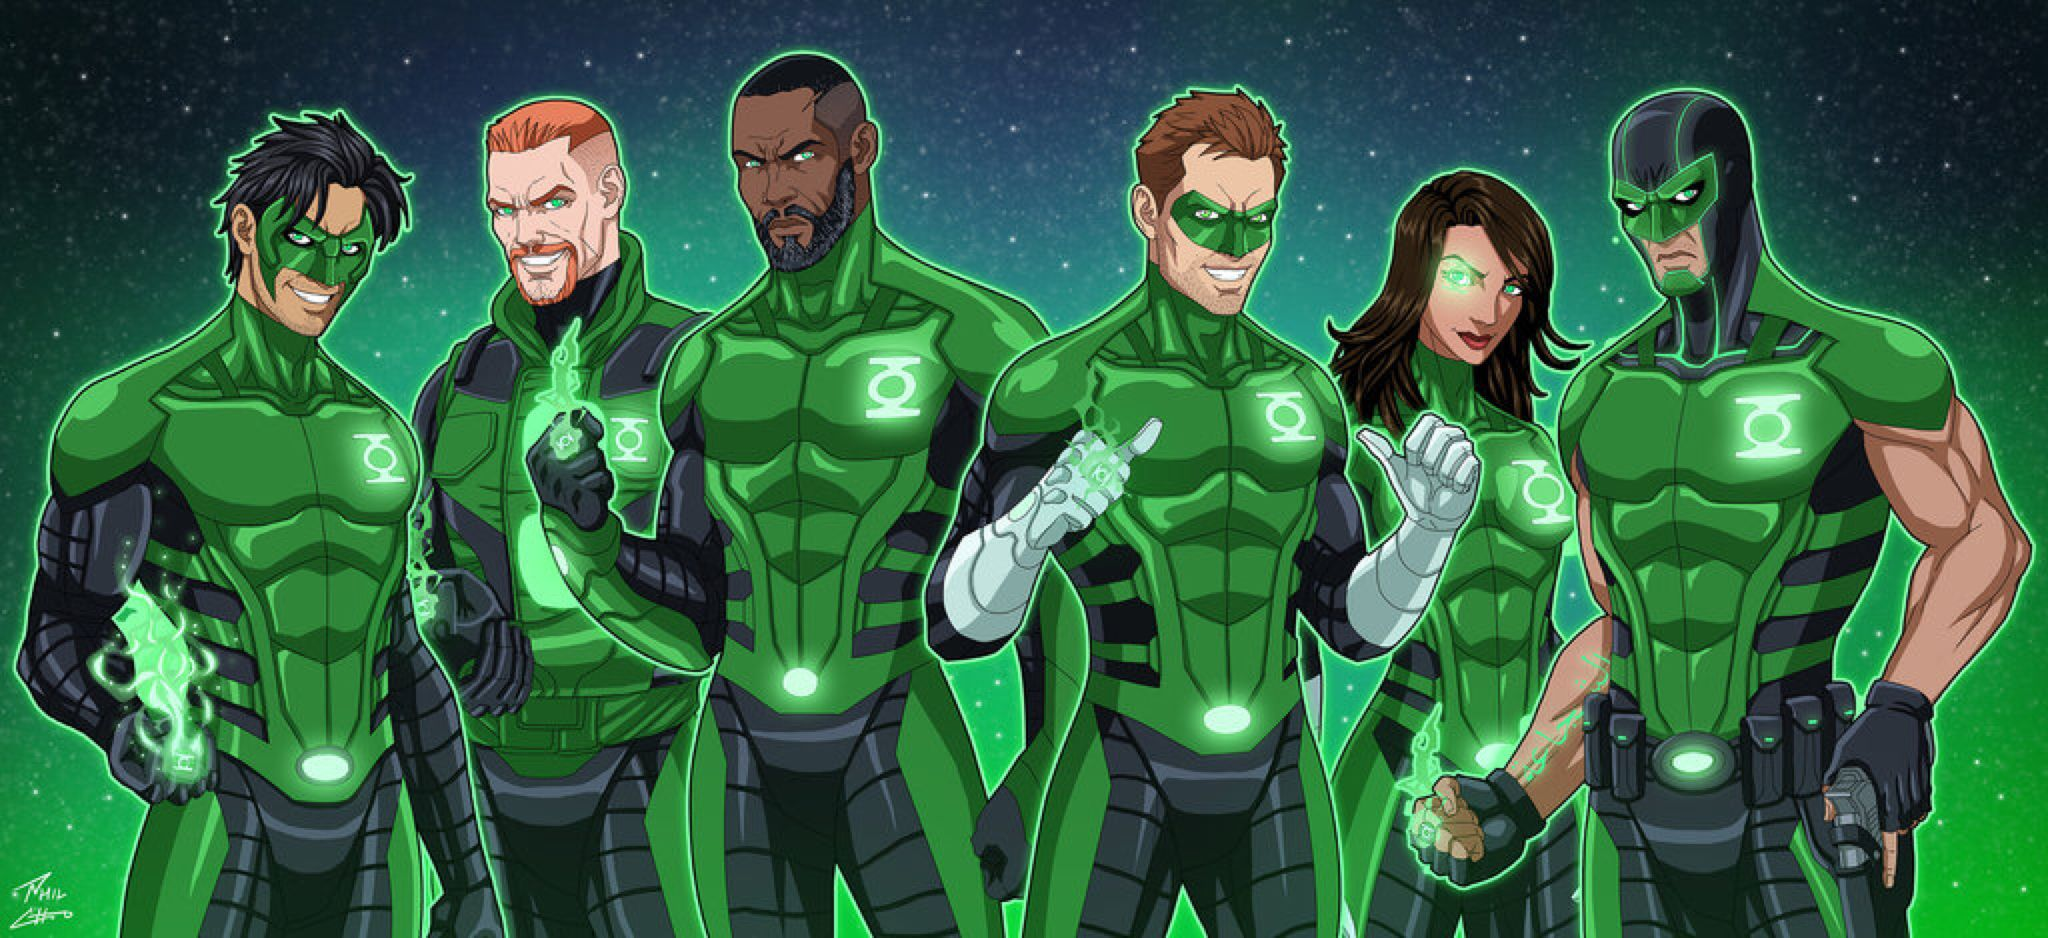 Green Lantern Corps (Earth-27) by phil-cho on @DeviantArt | Green ...